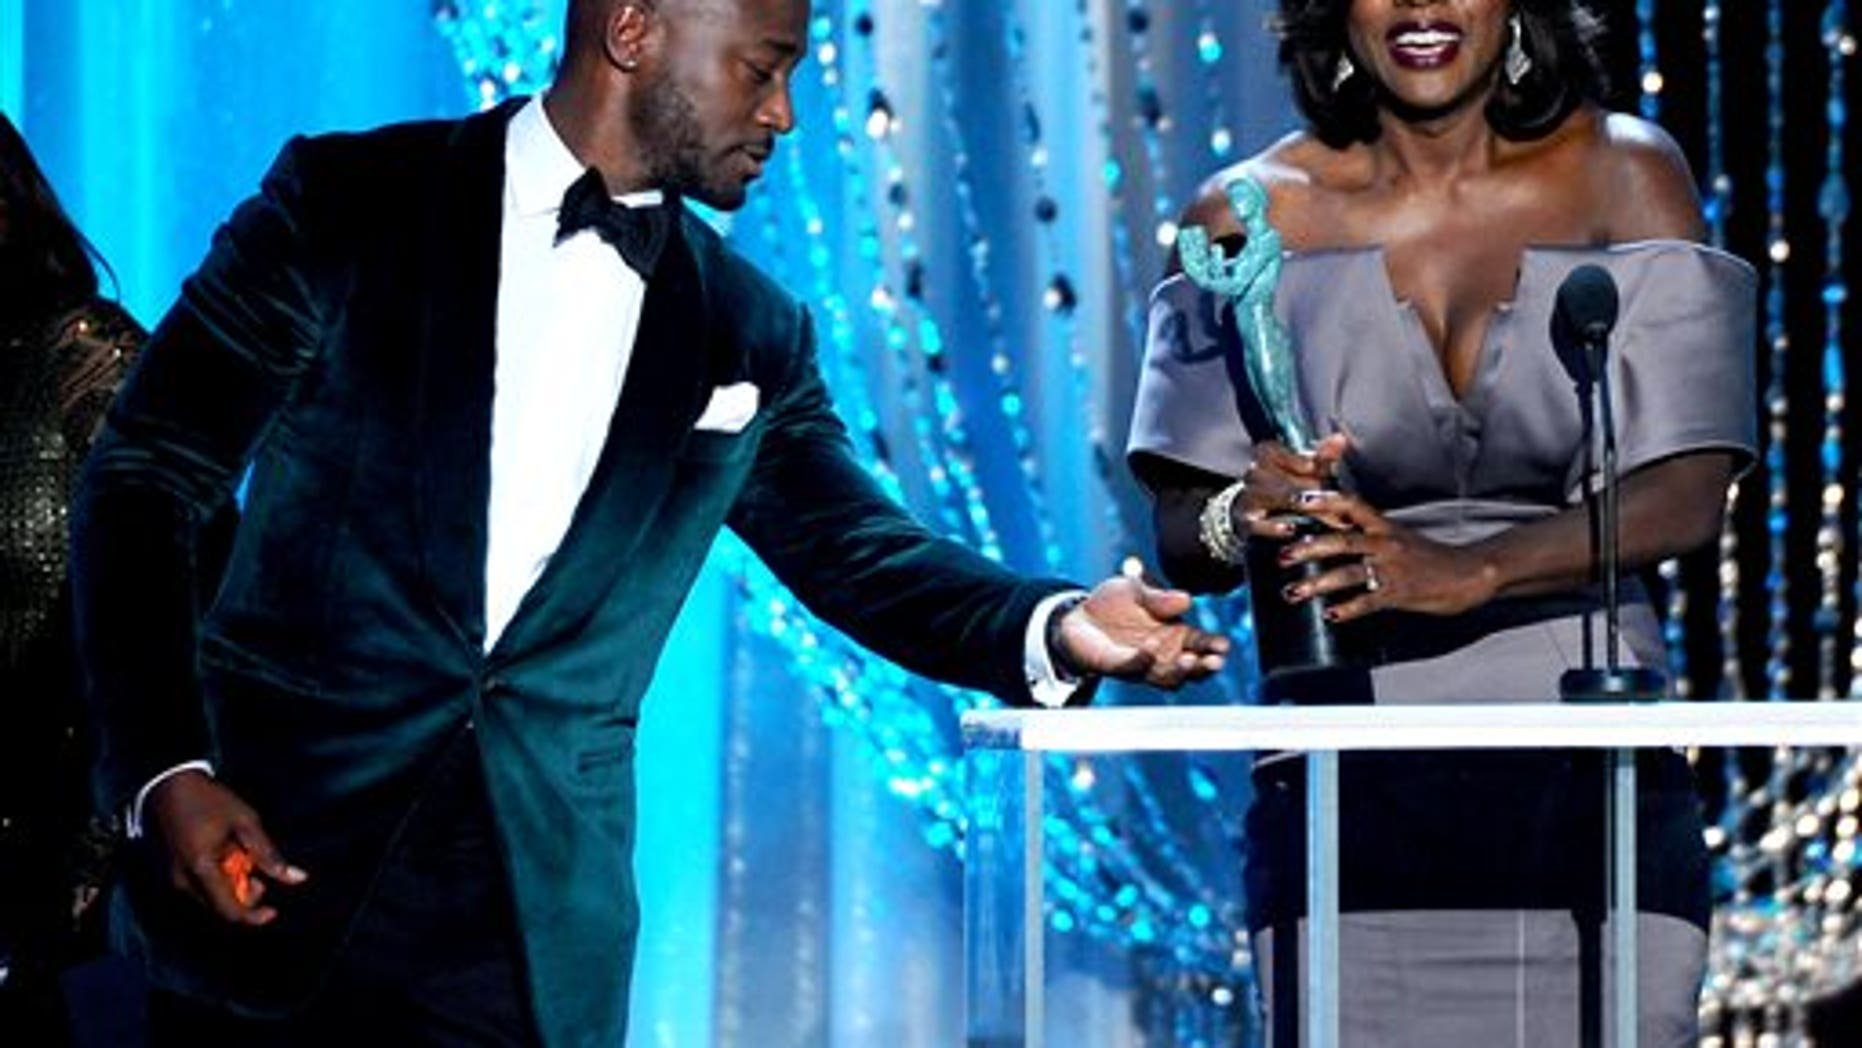 """FILE - In this Saturday, Jan. 30, 2016 file photo, Taye Diggs, left, presents Viola Davis with the award for outstanding female actor in a drama series for """"How to Get Away with Murder"""" at the 22nd annual Screen Actors Guild Awards at the Shrine Auditorium & Expo Hall in Los Angeles.  A coalition of advocacy groups is calling on major Hollywood film studios to broaden their diversity efforts to include Hispanics, Asian-Americans and Indians as well as blacks. (Photo by Vince Bucci/Invision/AP, File)"""